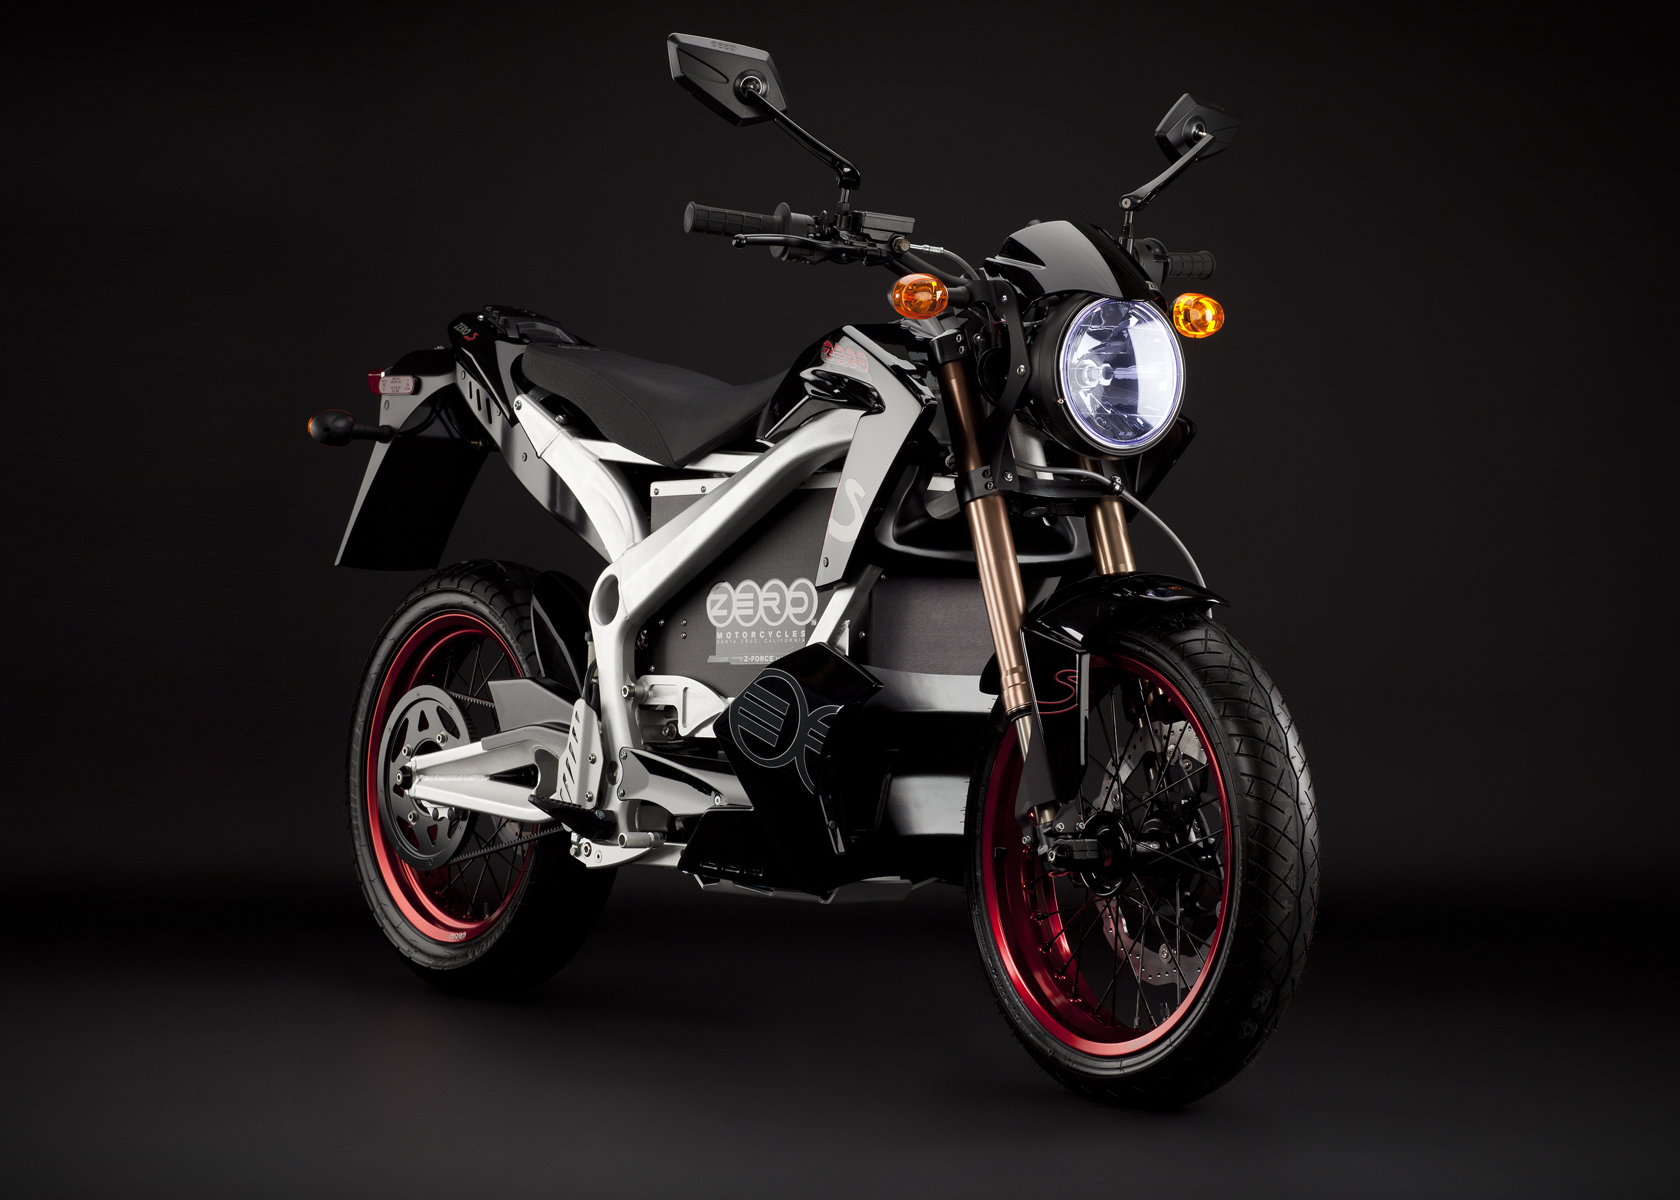 2011 Zero S Electric Motorcycle: Black Angle Right